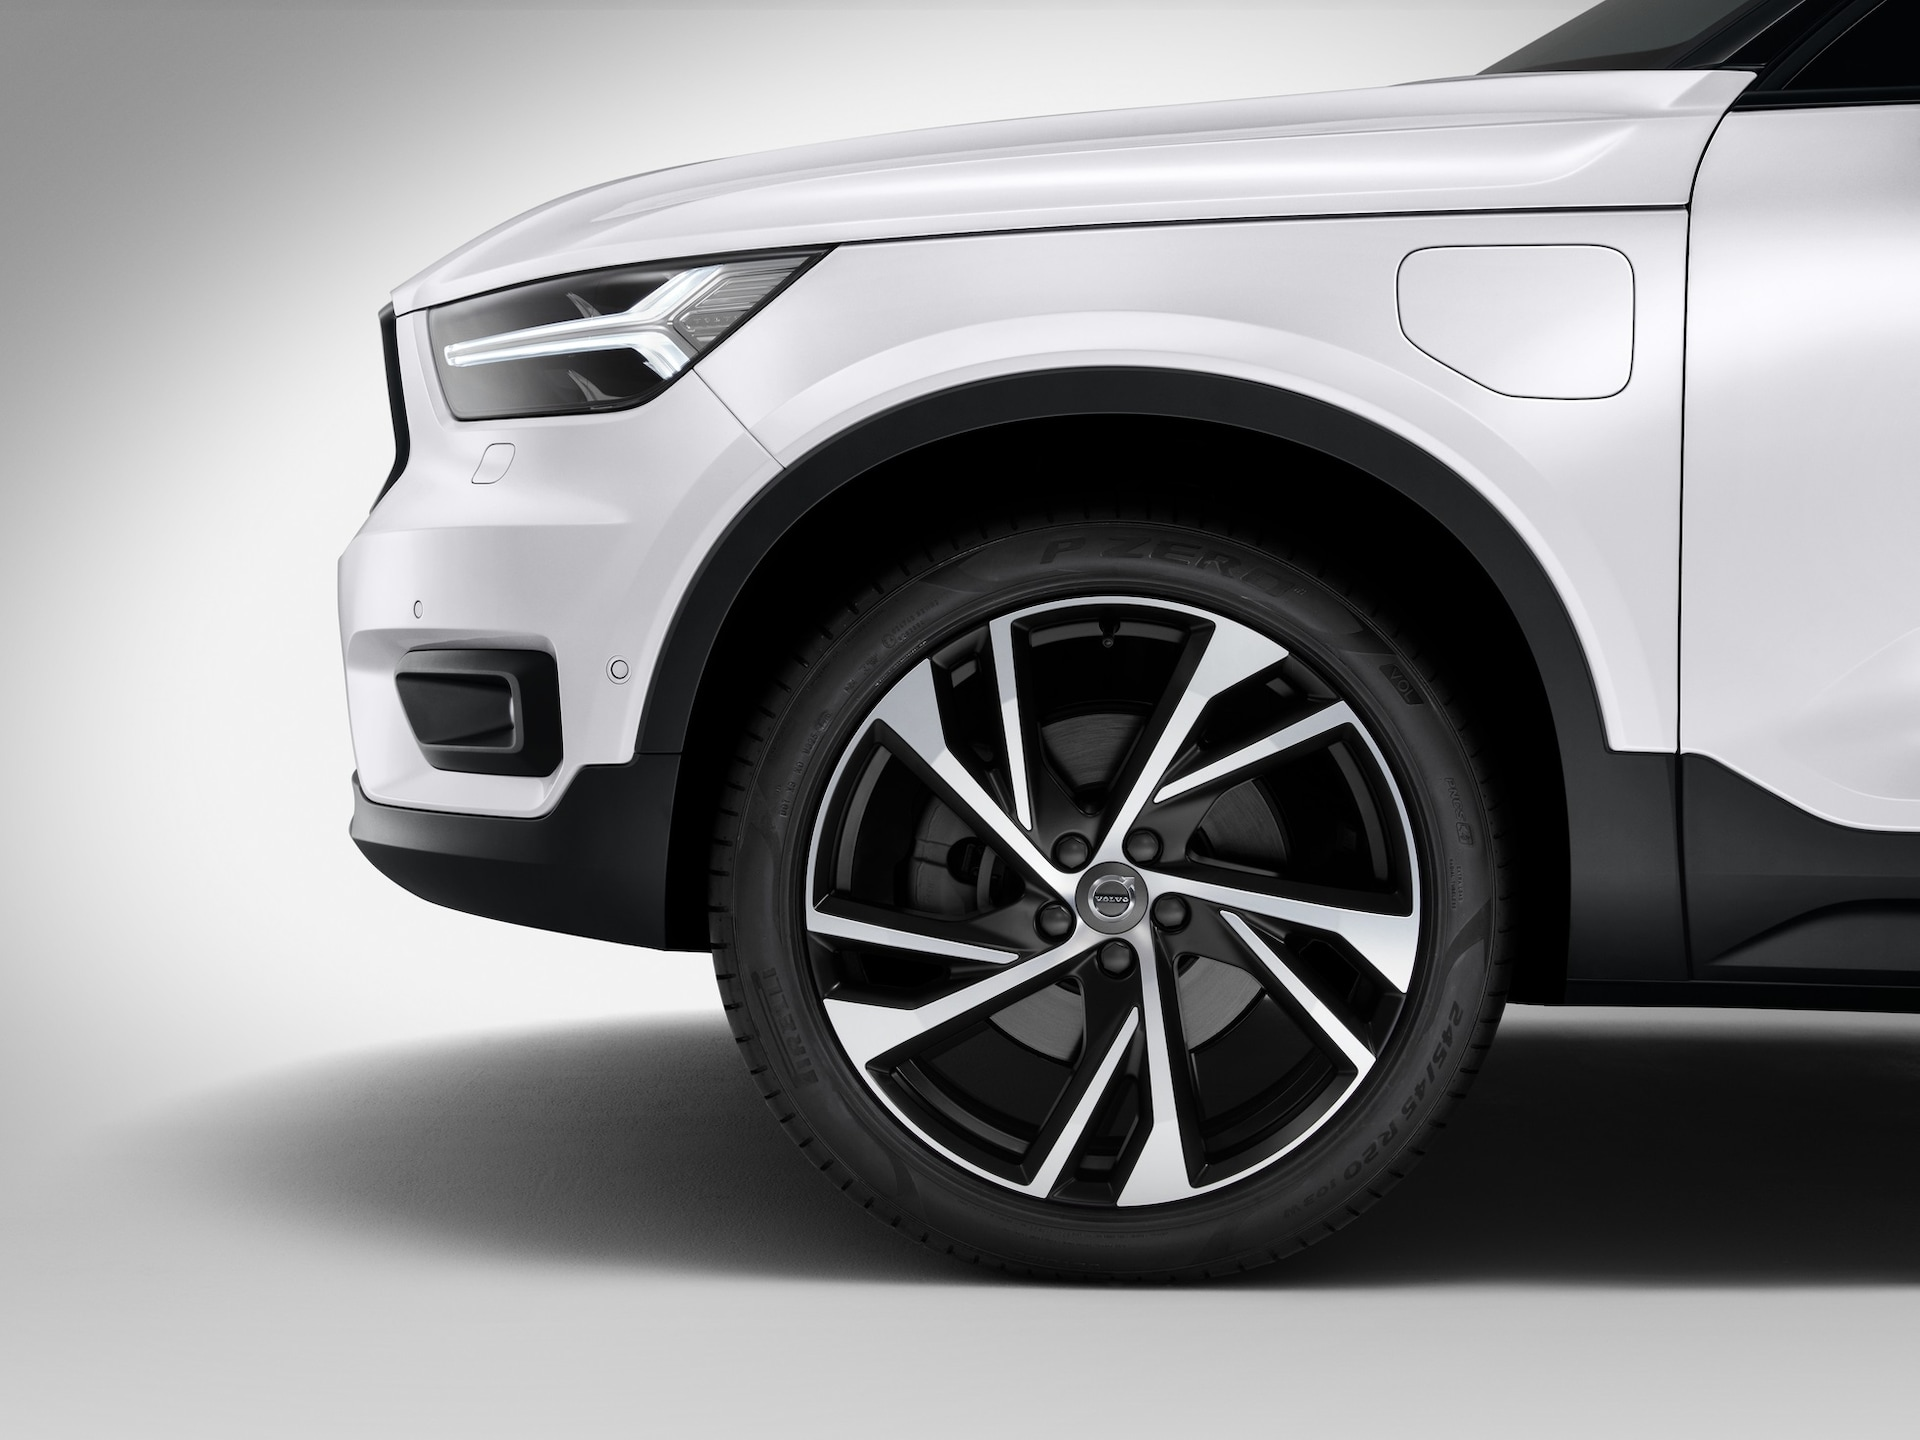 A Volvo XC40 recharge model's wheel from left side view